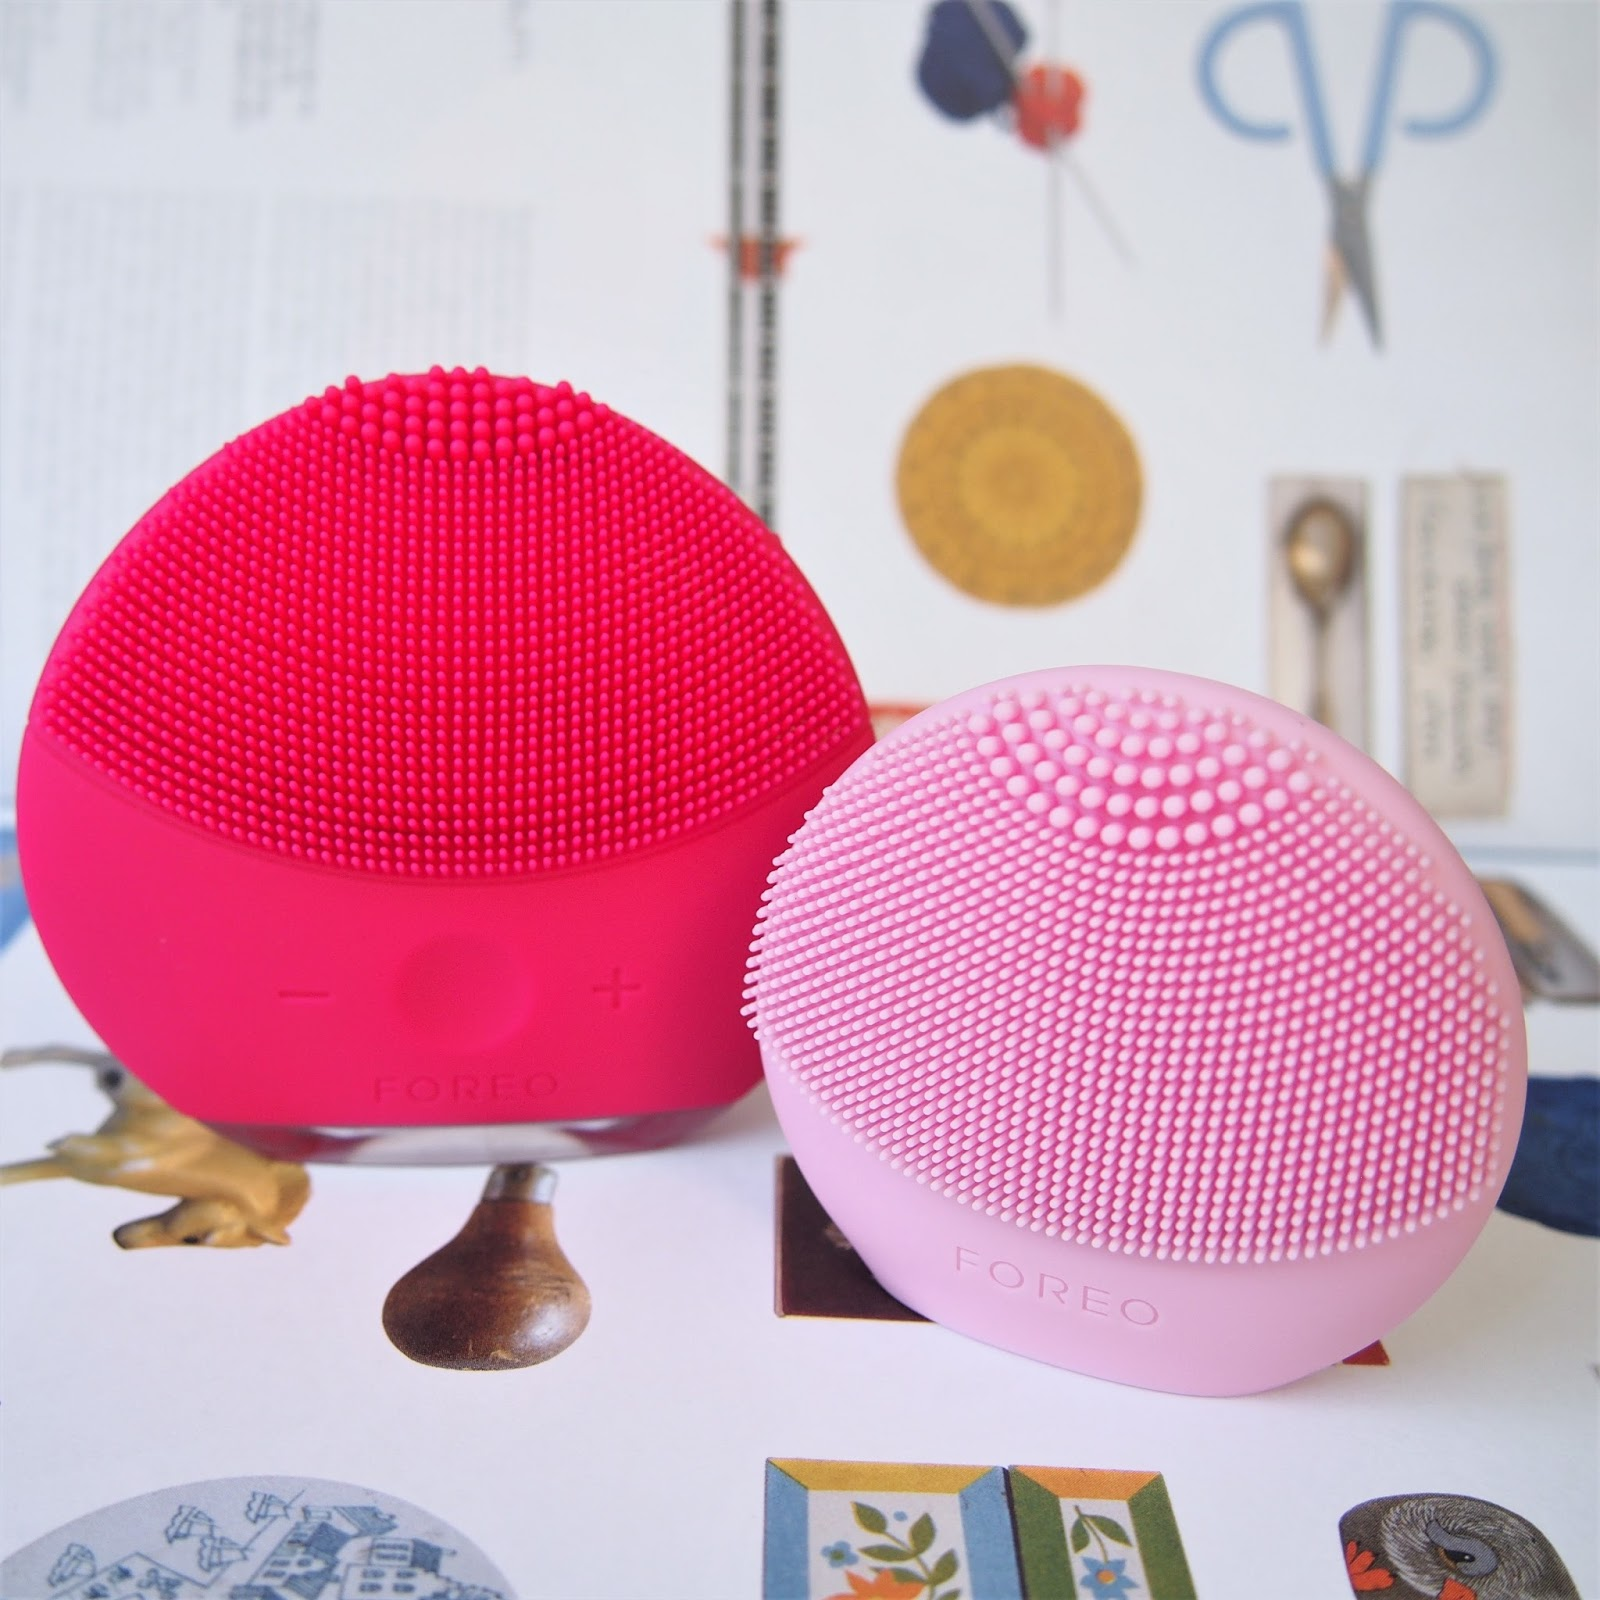 Product Comparison: FOREO LUNA play vs. FOREO LUNA play plus